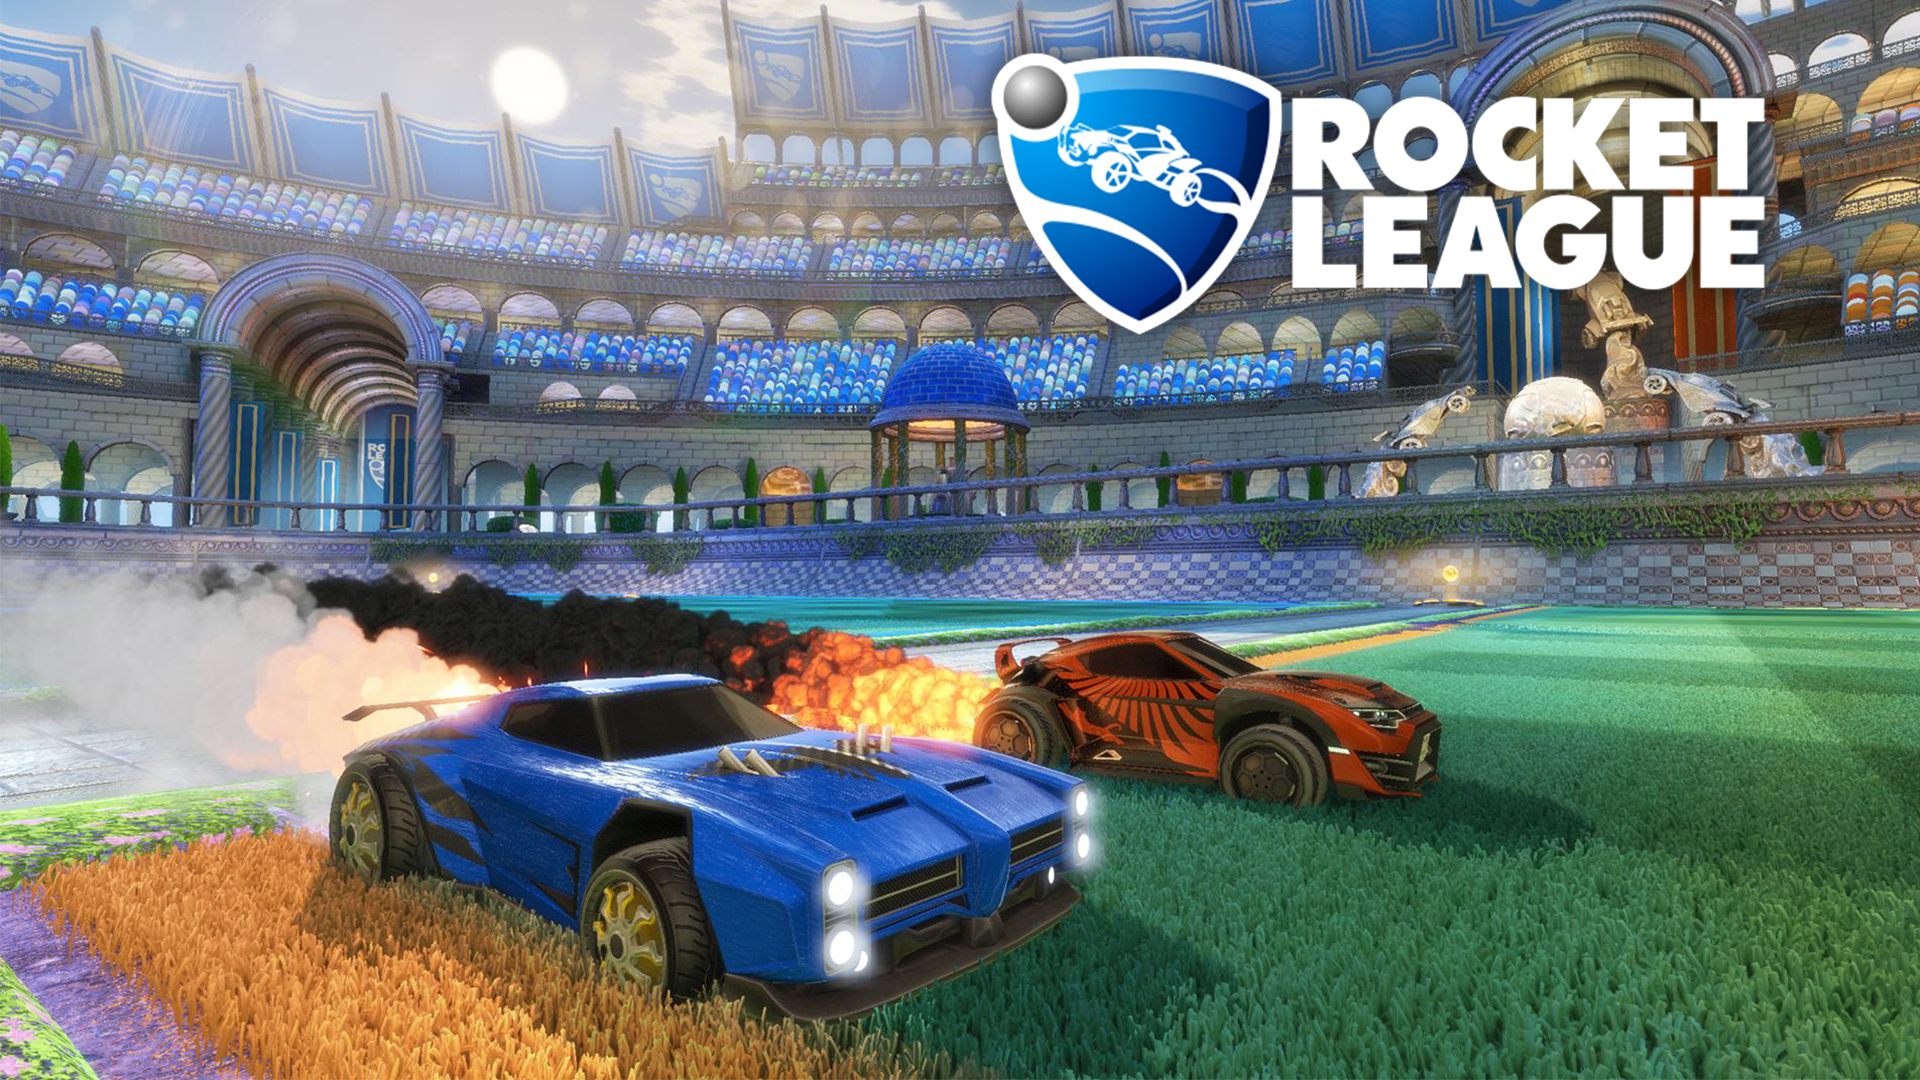 22.30 - Start Rocket League